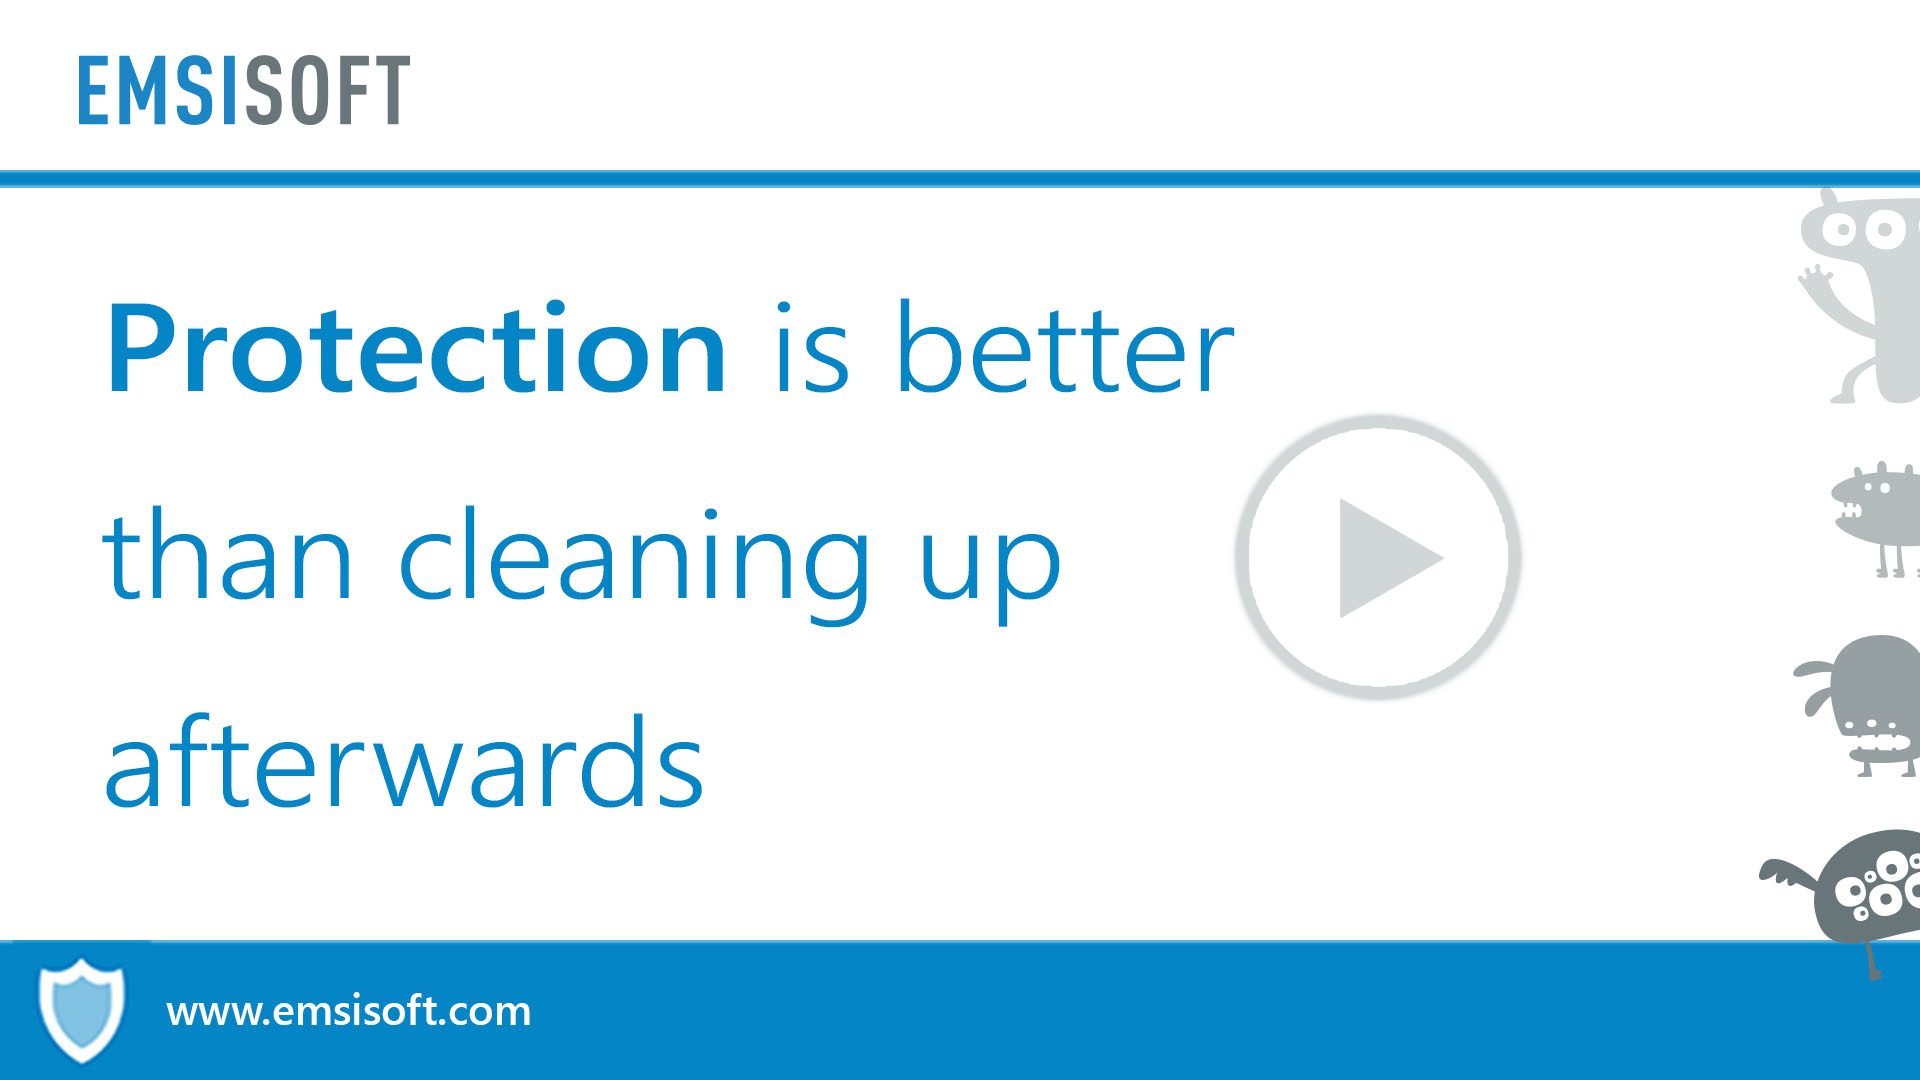 What's the deal with protection vs cleaning?